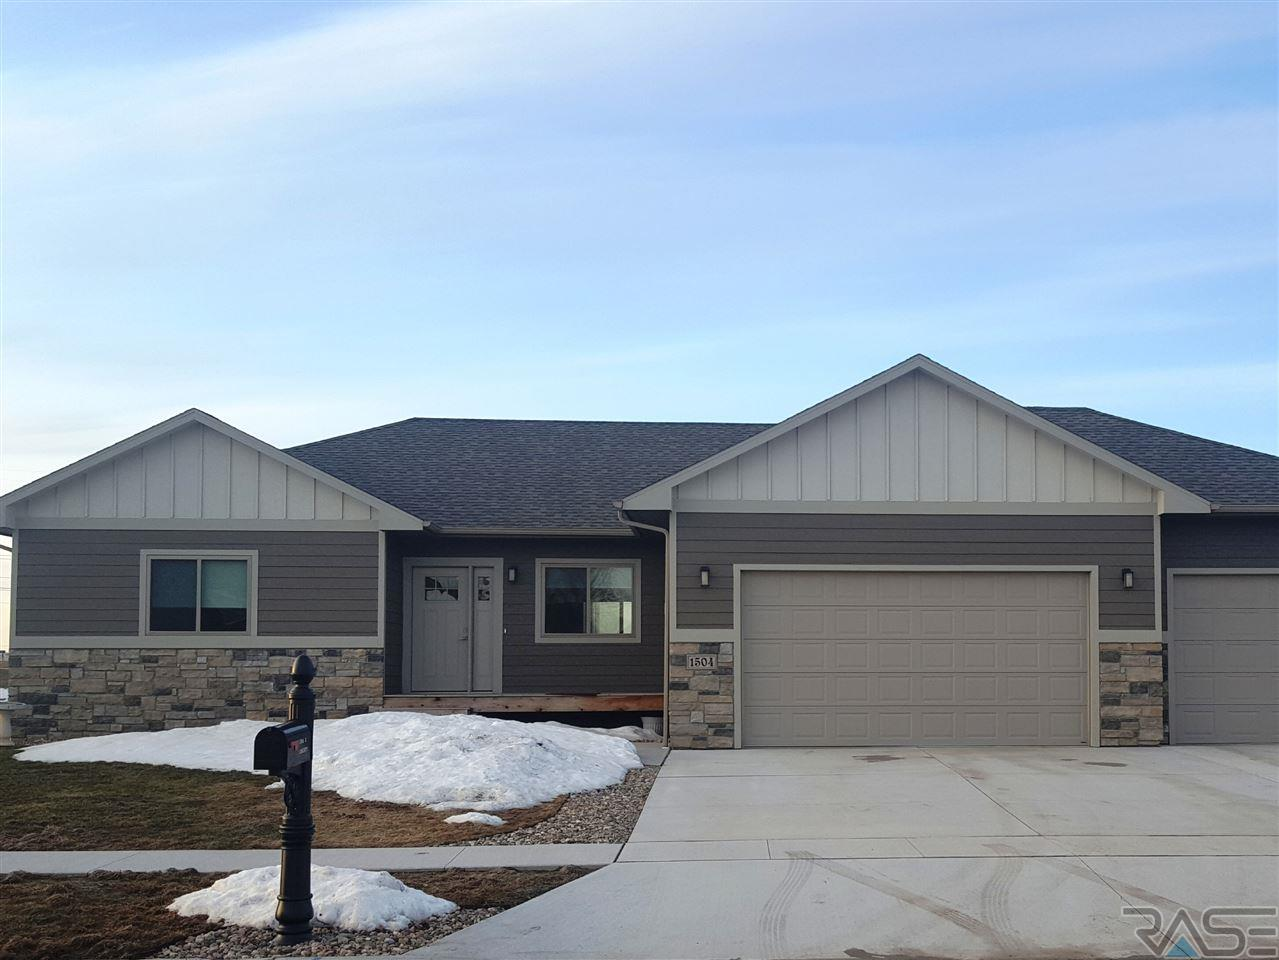 sd sioux real falls cir winterberry garage lady w the estate doors property